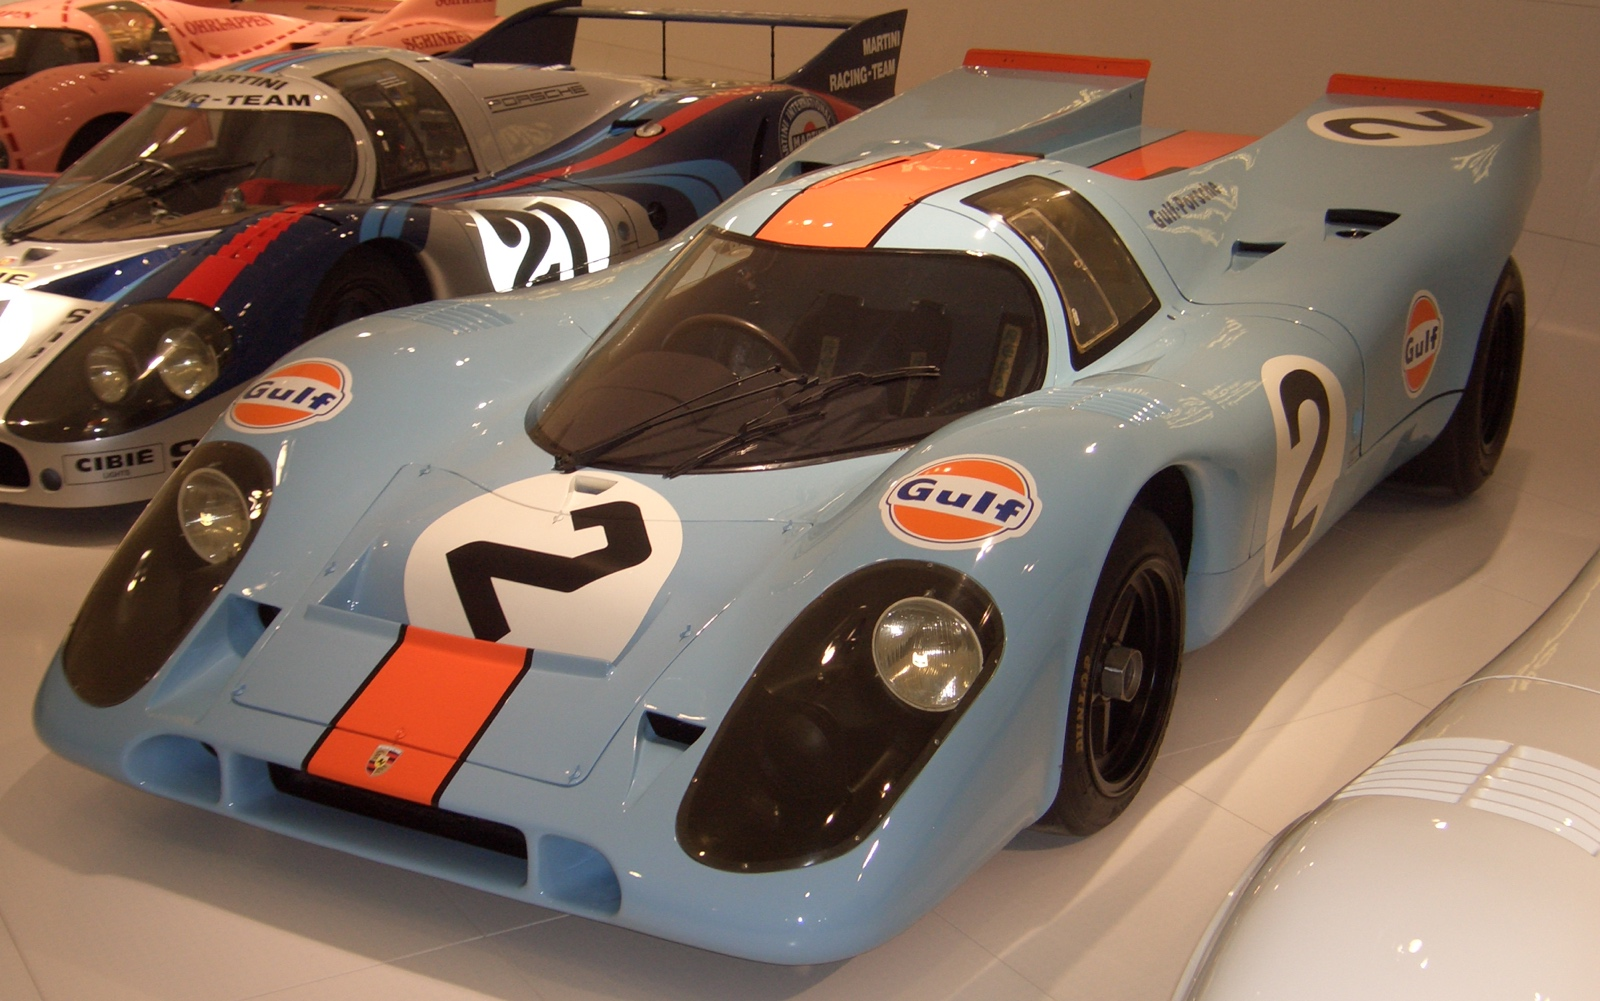 hm8-can-am-porsche-917-turbo-panzer-1